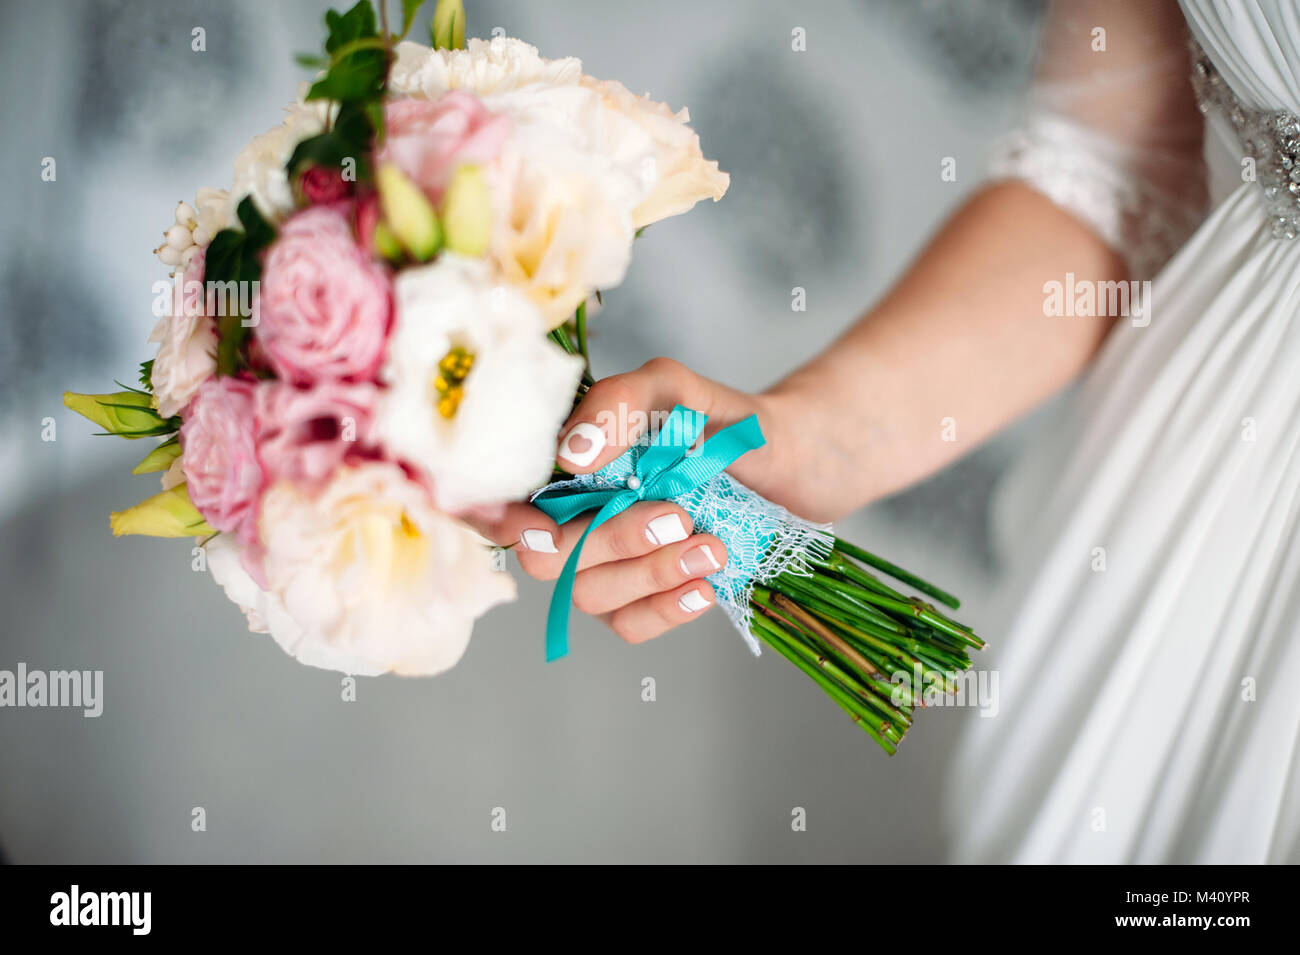 Bride Holding Wedding Bouquet In Your Hand White And Pink Flowers